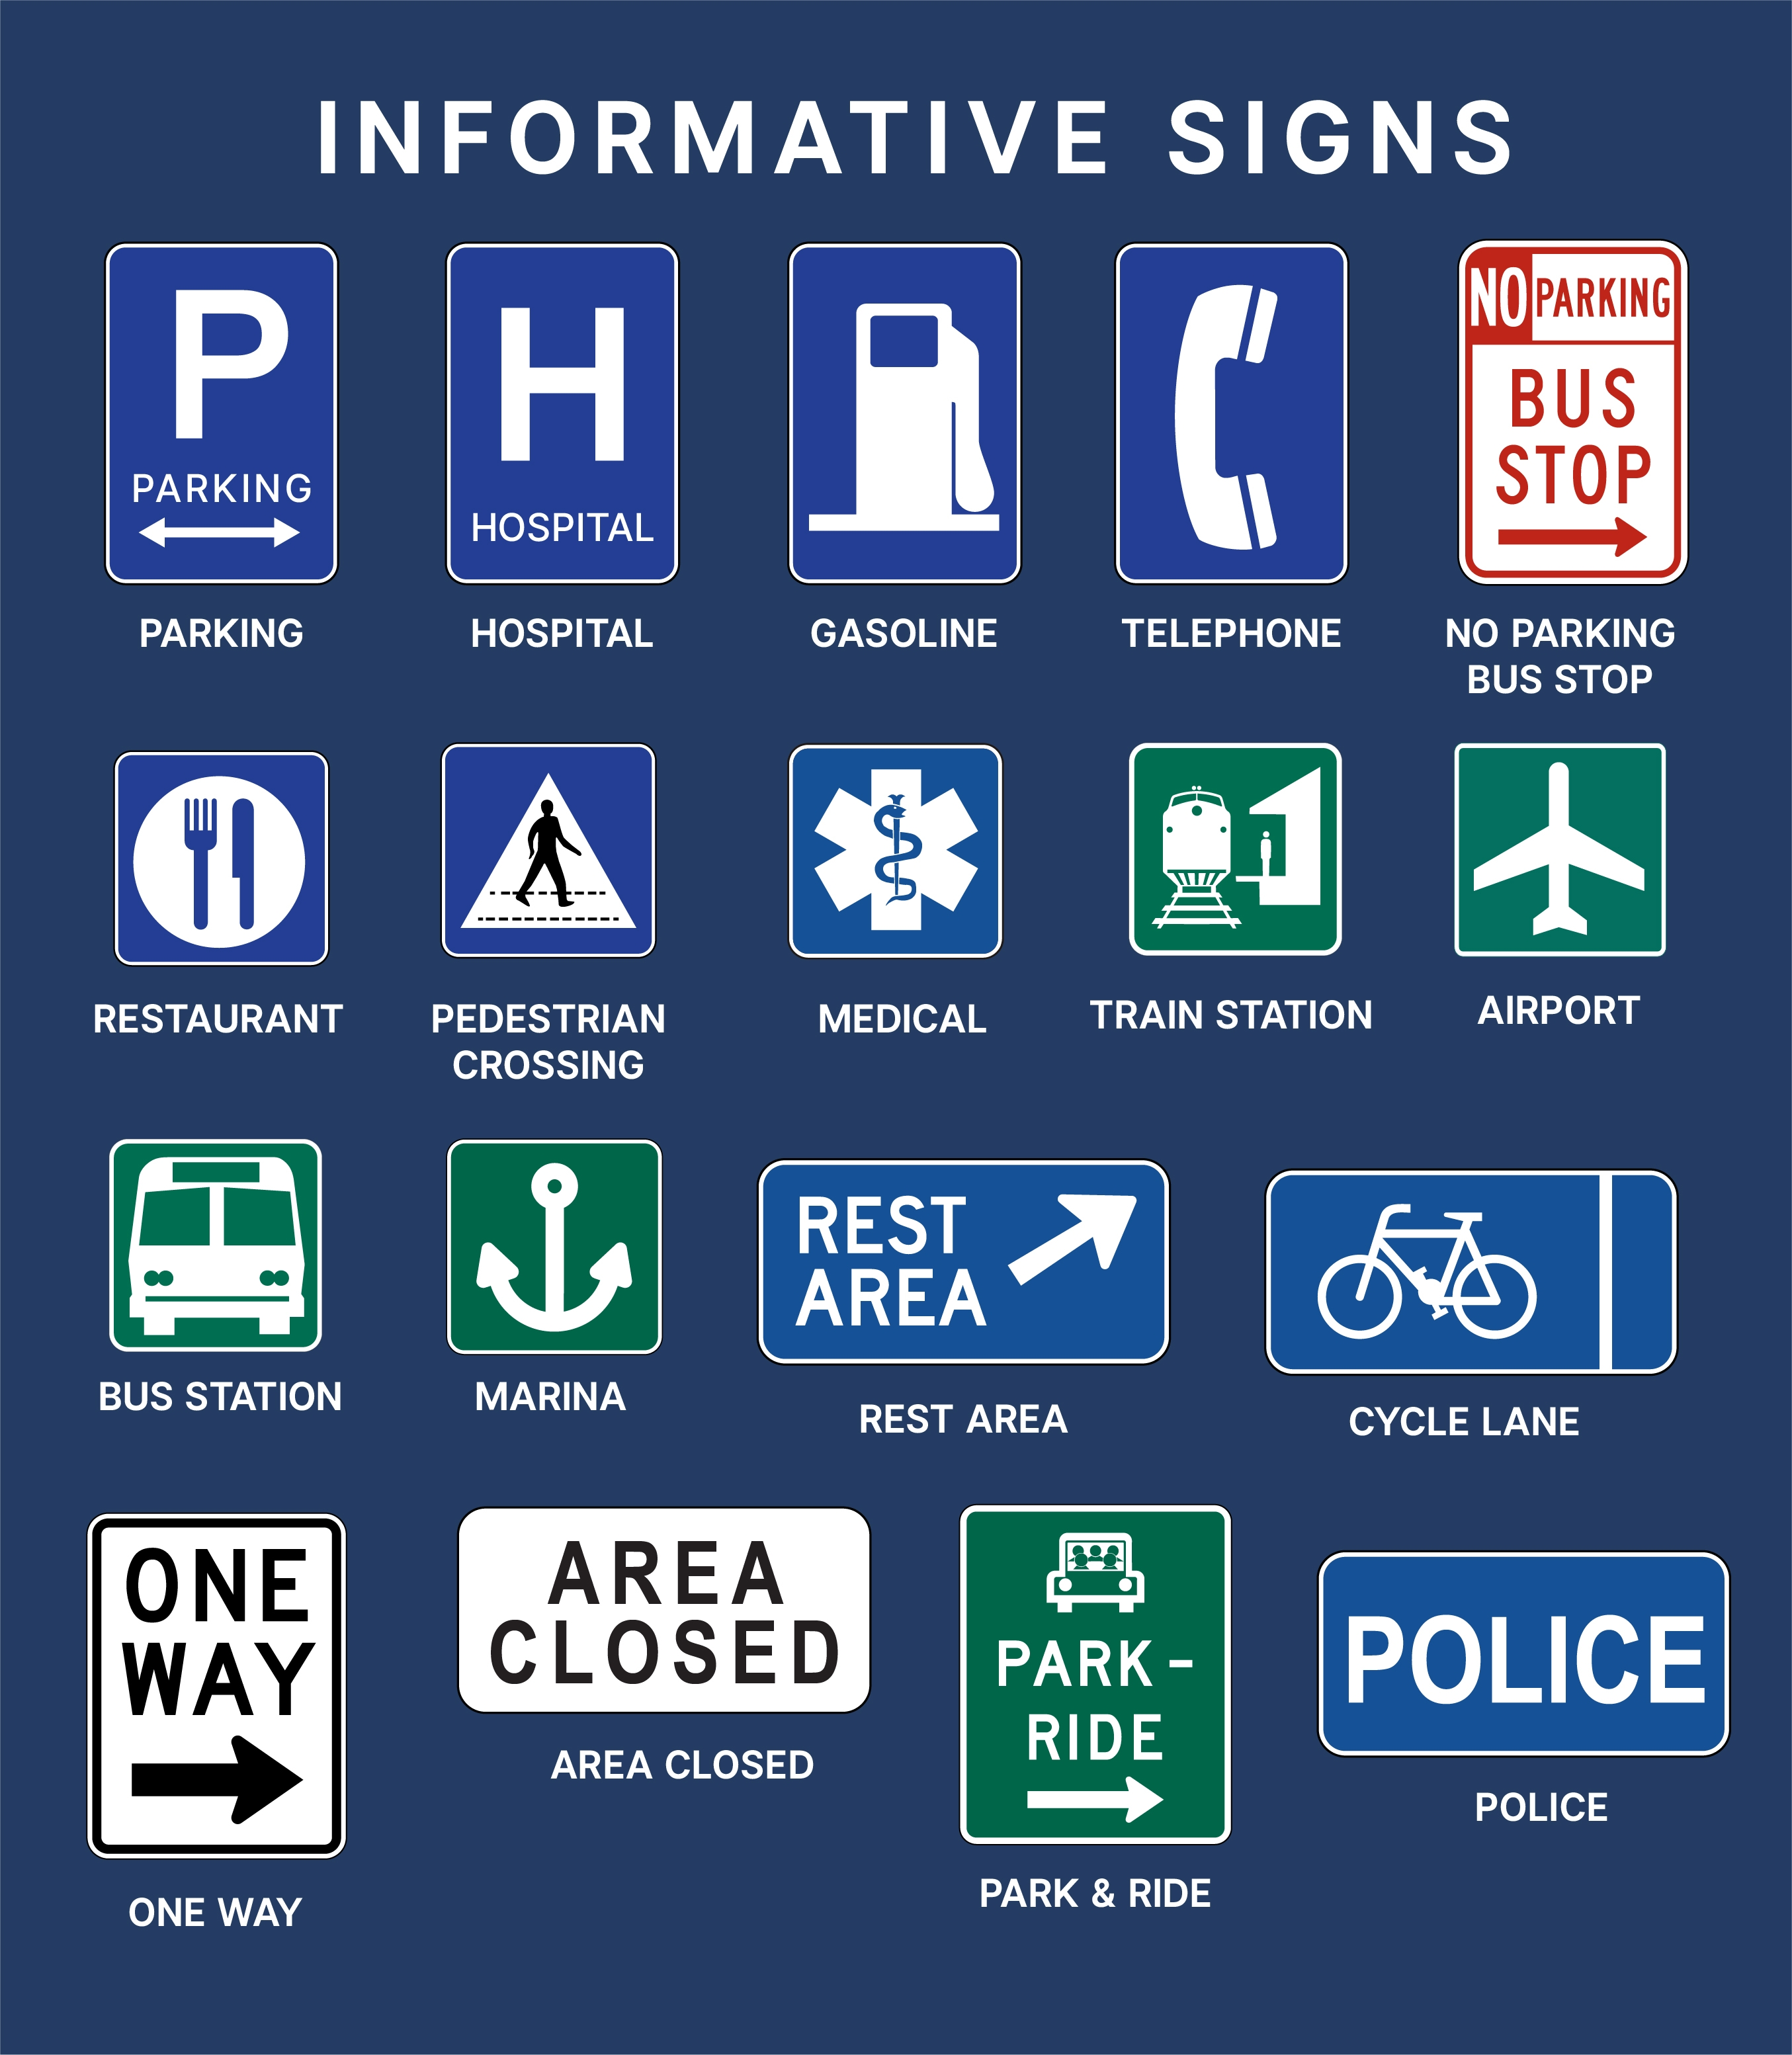 Informative Signs